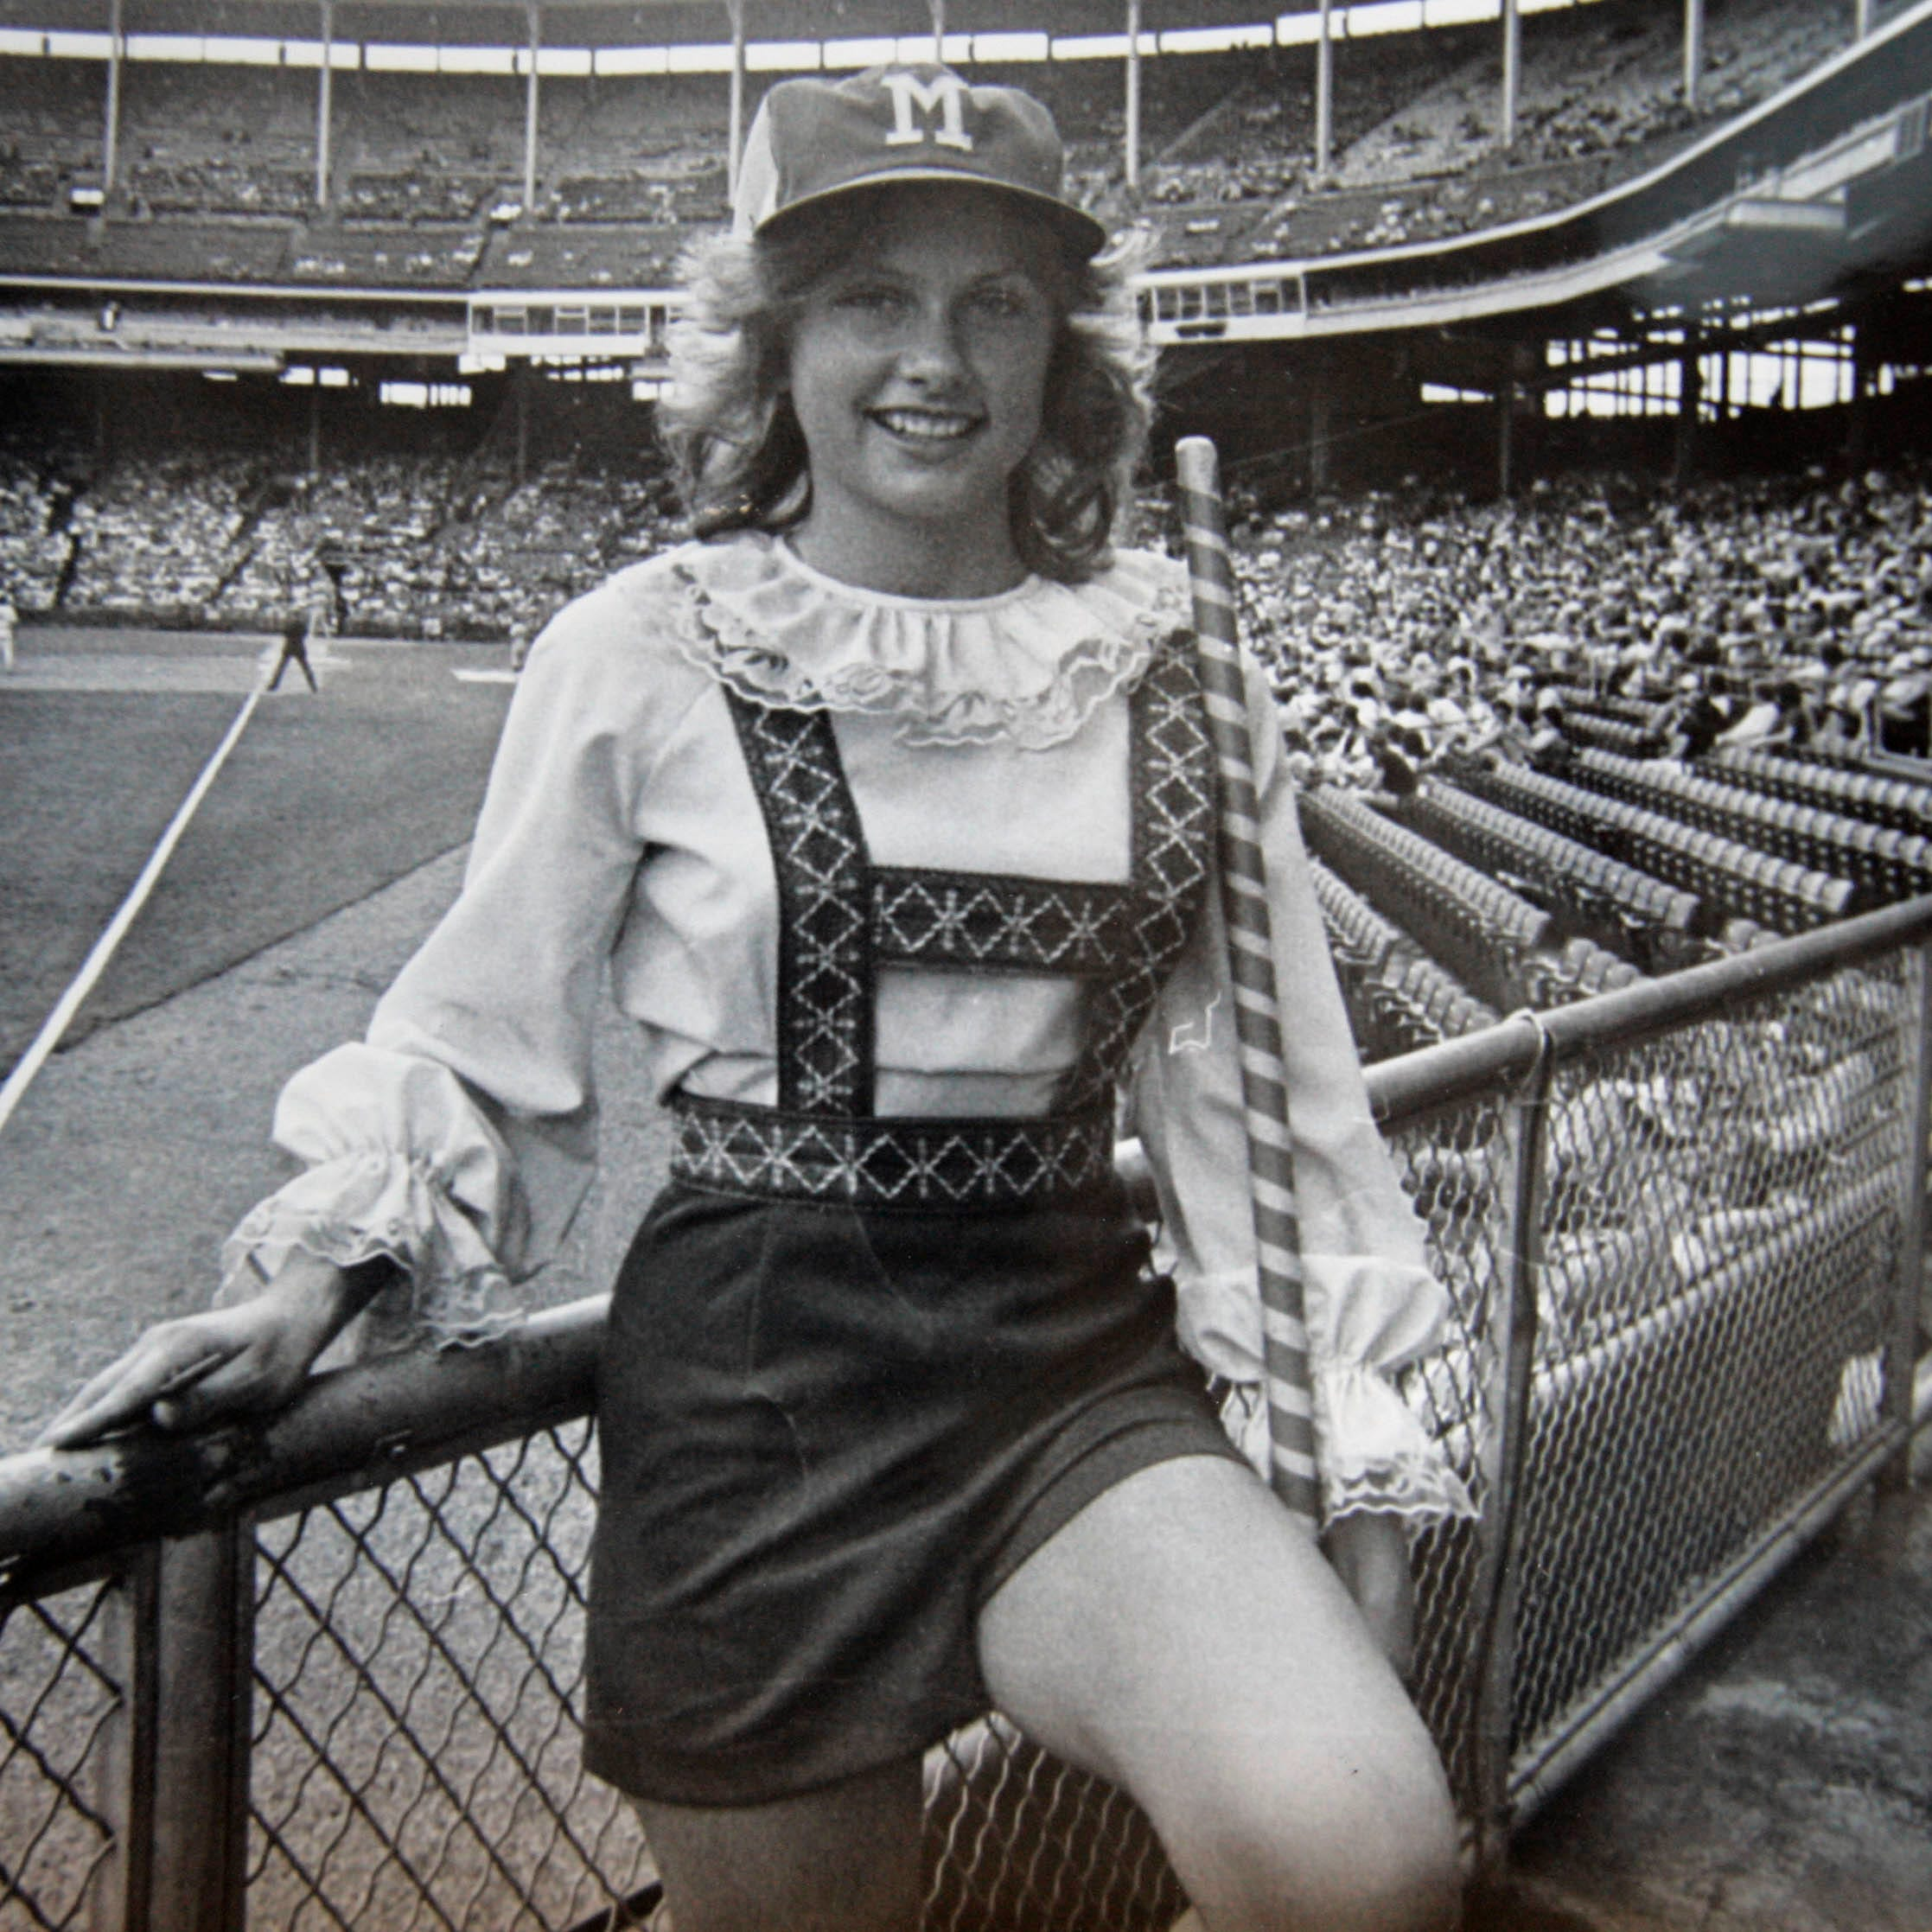 Long before the Brewers 2018 playoff run and #Thisismycrew, there was Bonnie Brewer